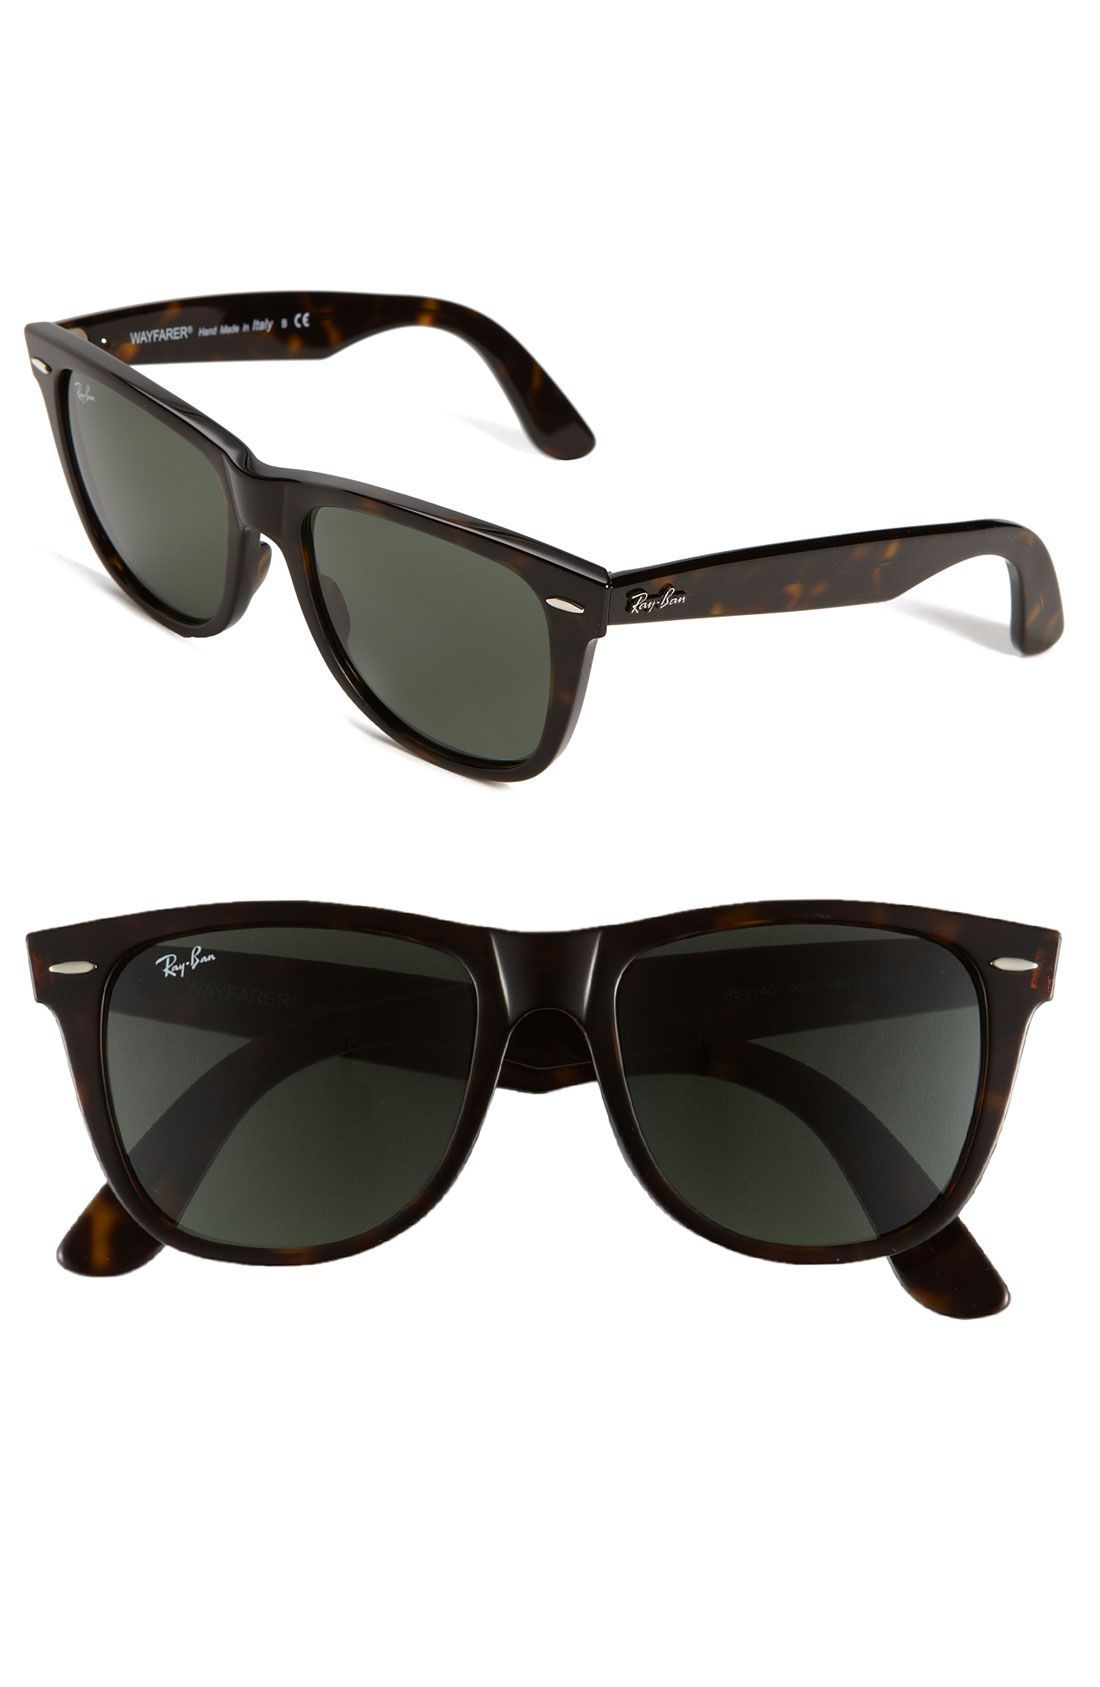 67009de0ed Ray-Ban  Classic Wayfarer ...there are wayfarers with smaller lenses but I  need the bigger lenses!